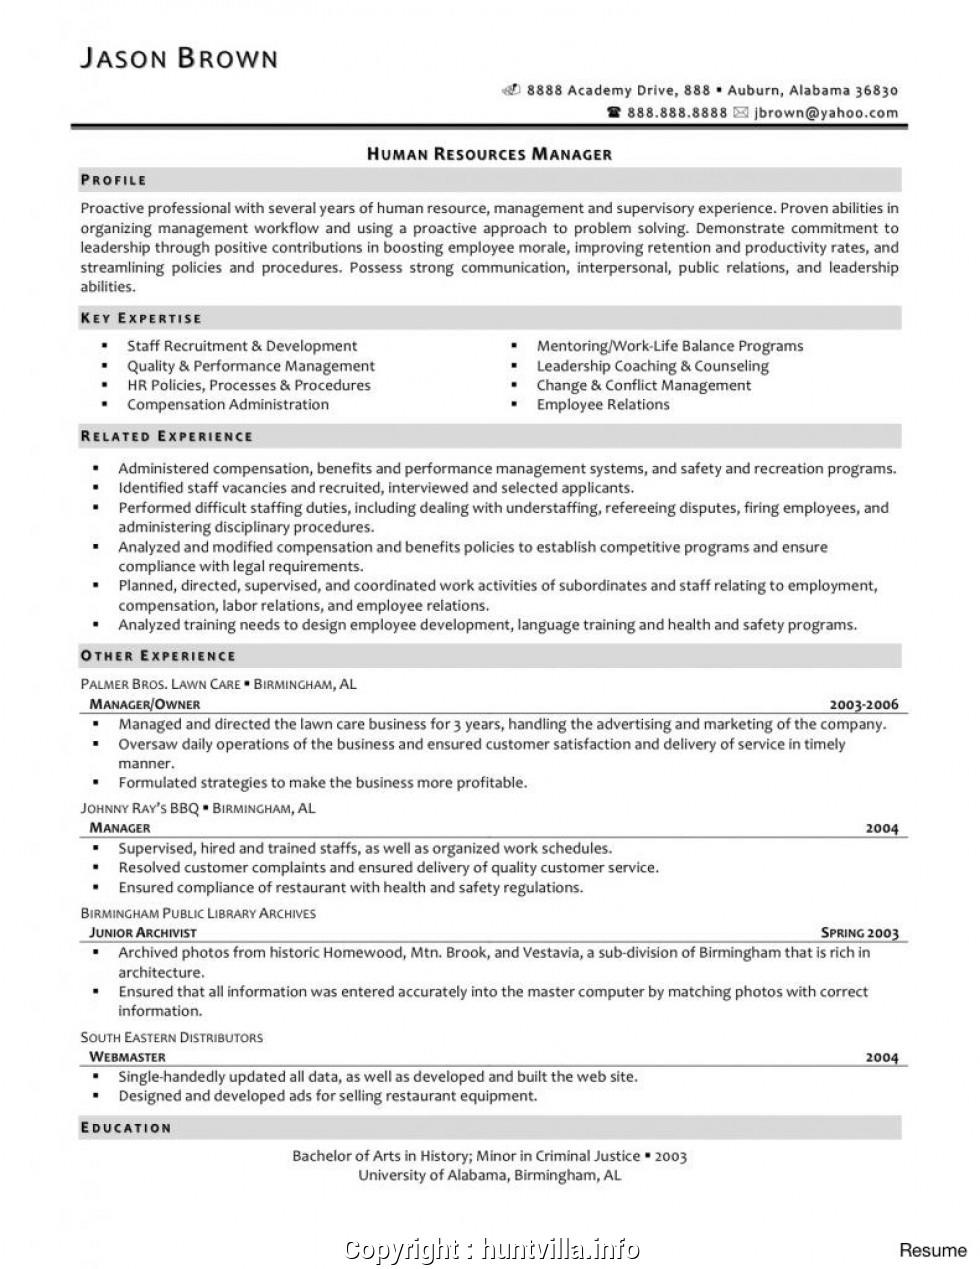 40 Awesome Entry Level Human Resources Resume for Pictures